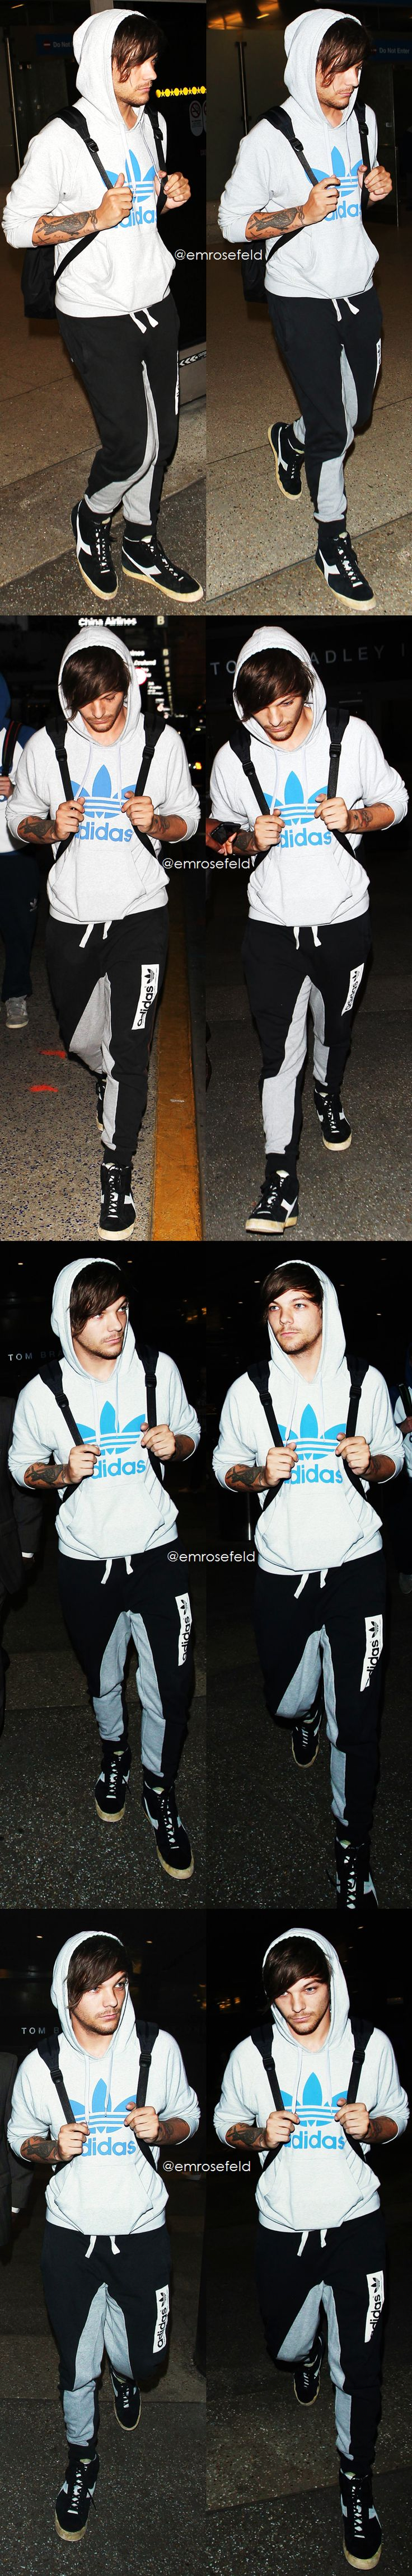 Louis Tomlinson | arriving at LAX 6.2.15 | @emrosefeld |